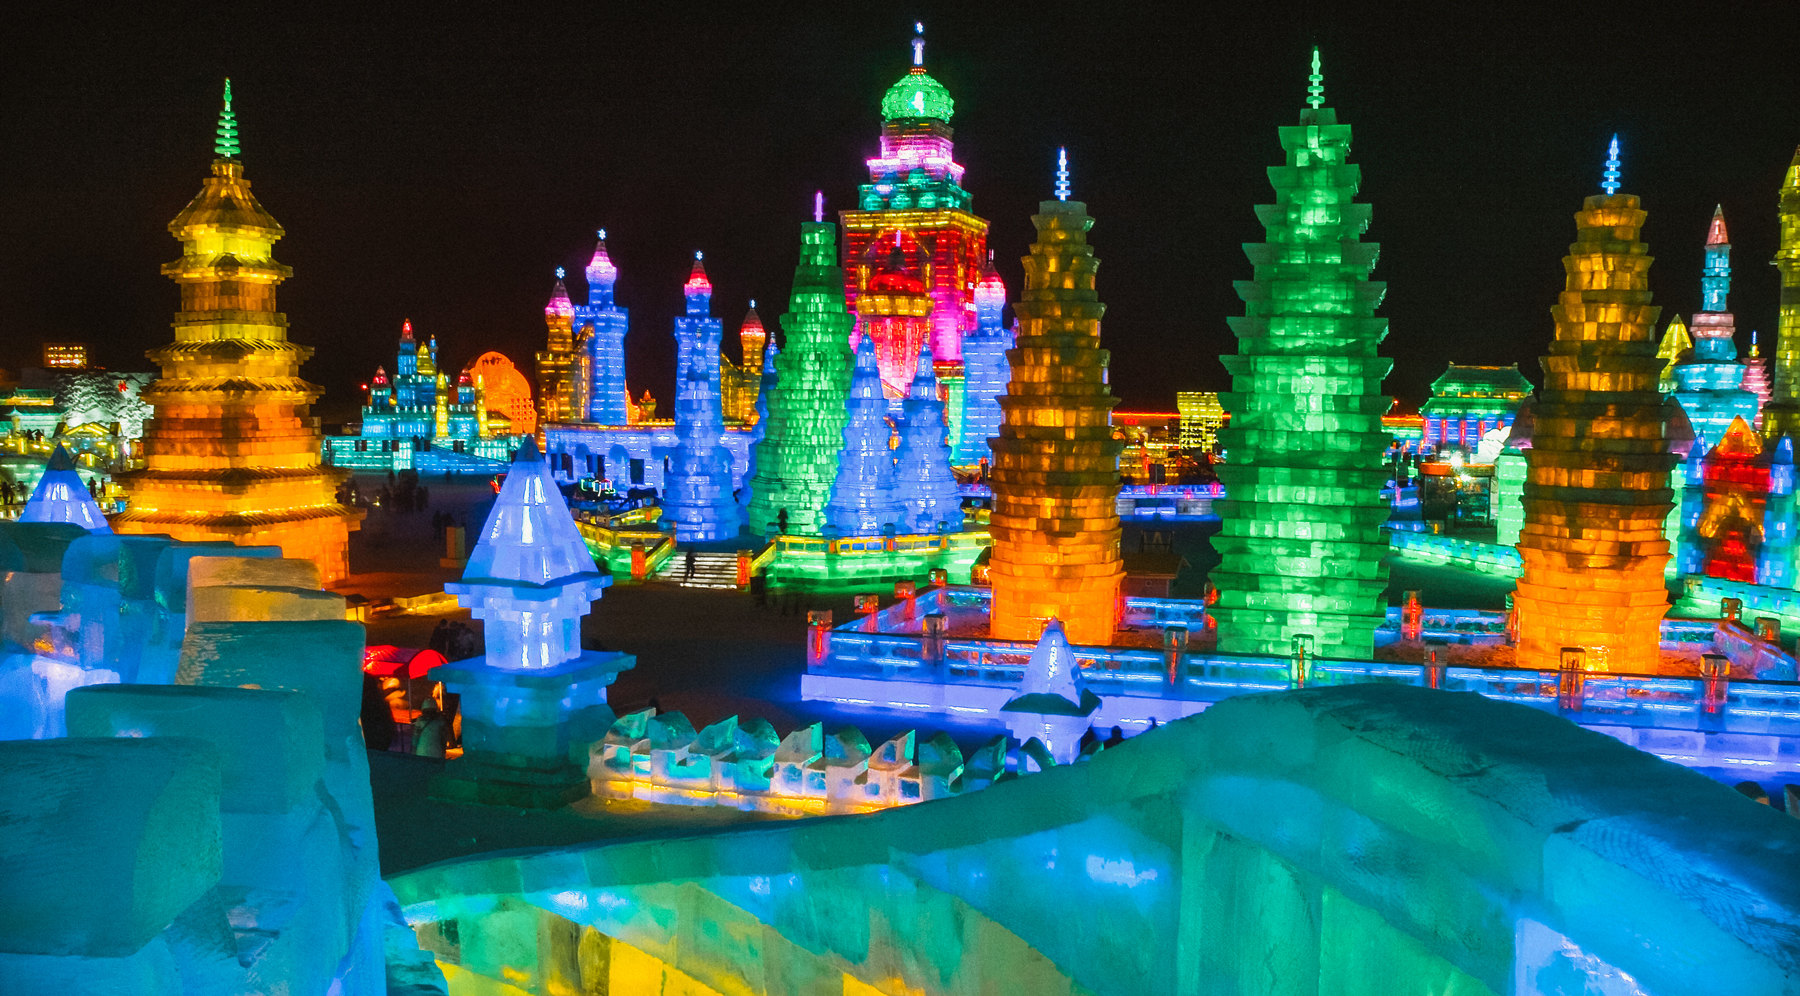 Harbin Ice and Snow Festival, China